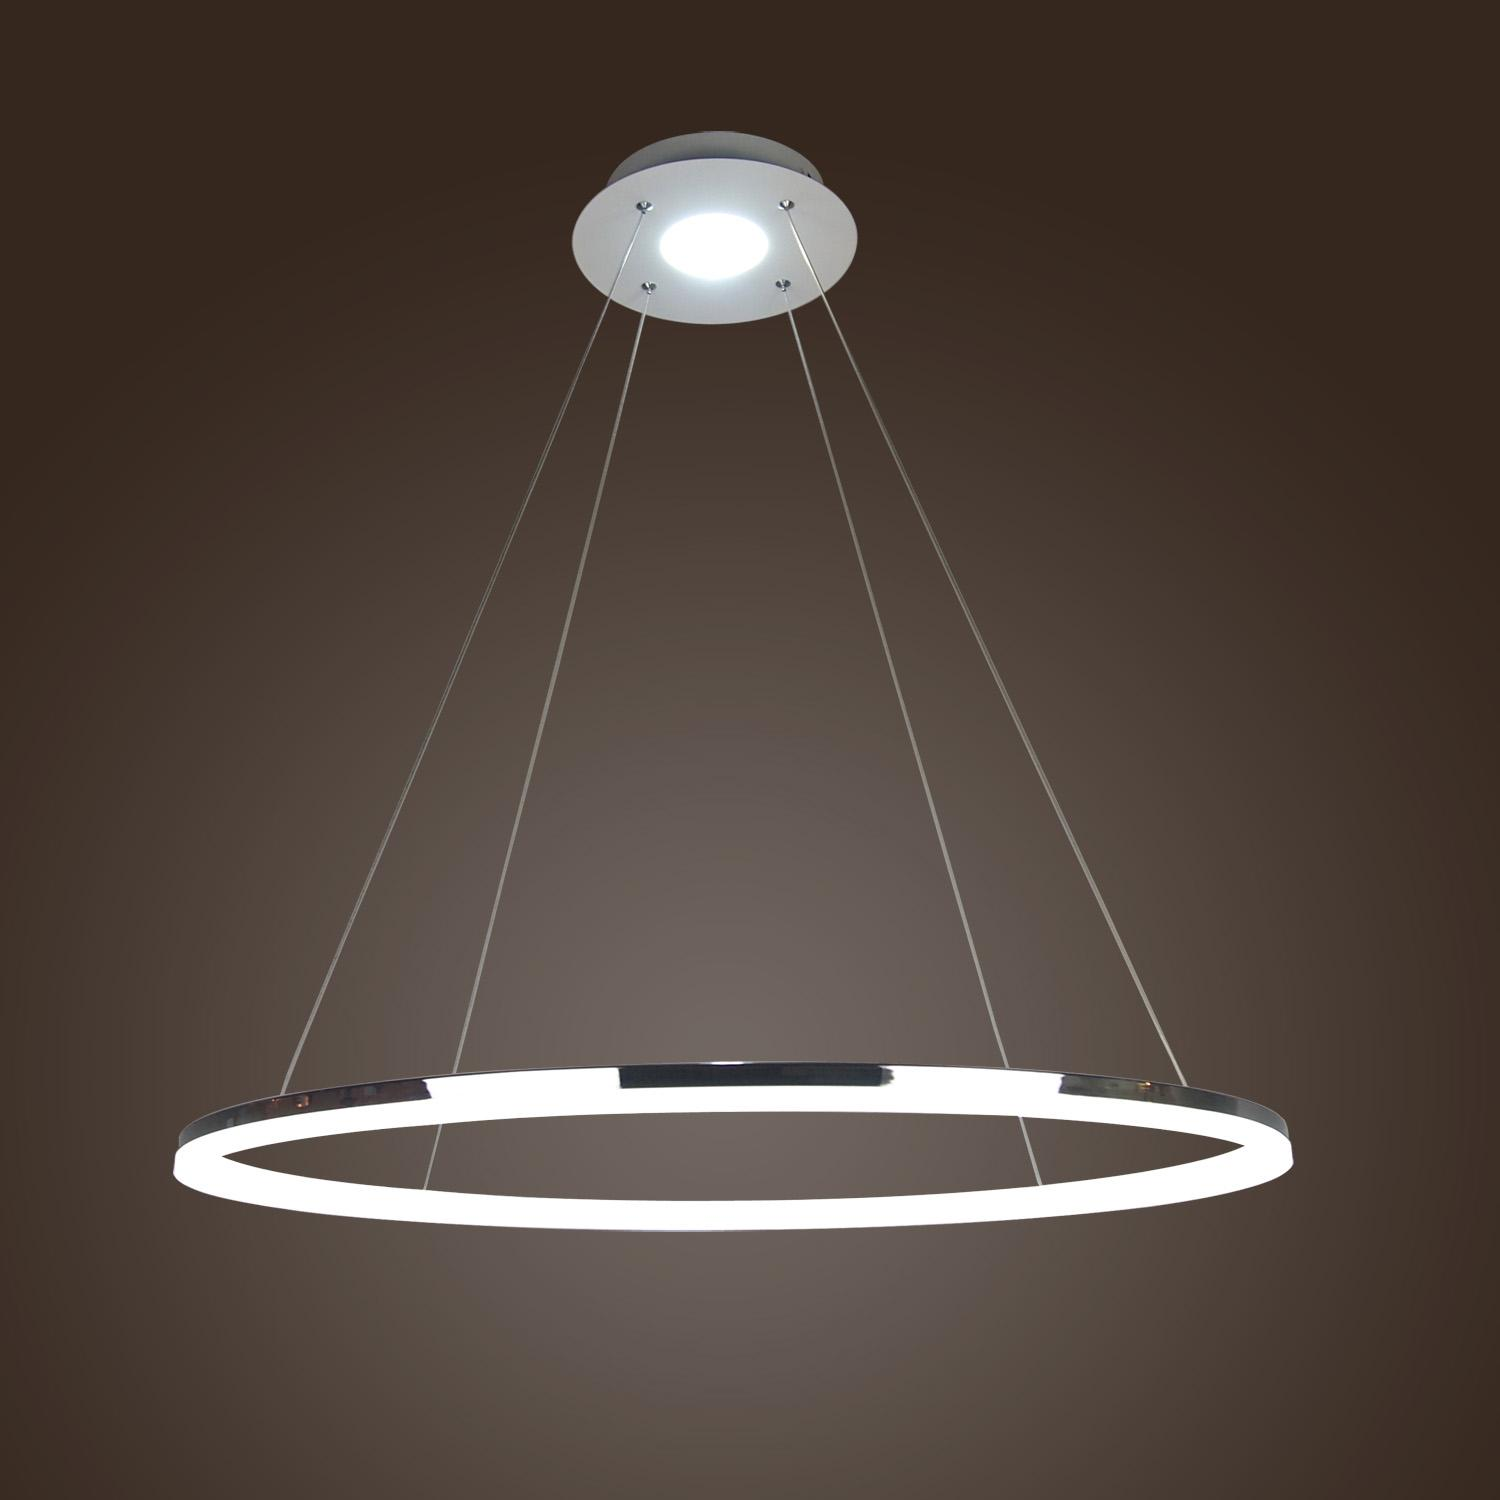 Led Light Fixture Pictures: Acrylic LED Ring Chandelier Pendant Lamp Ceiling Light